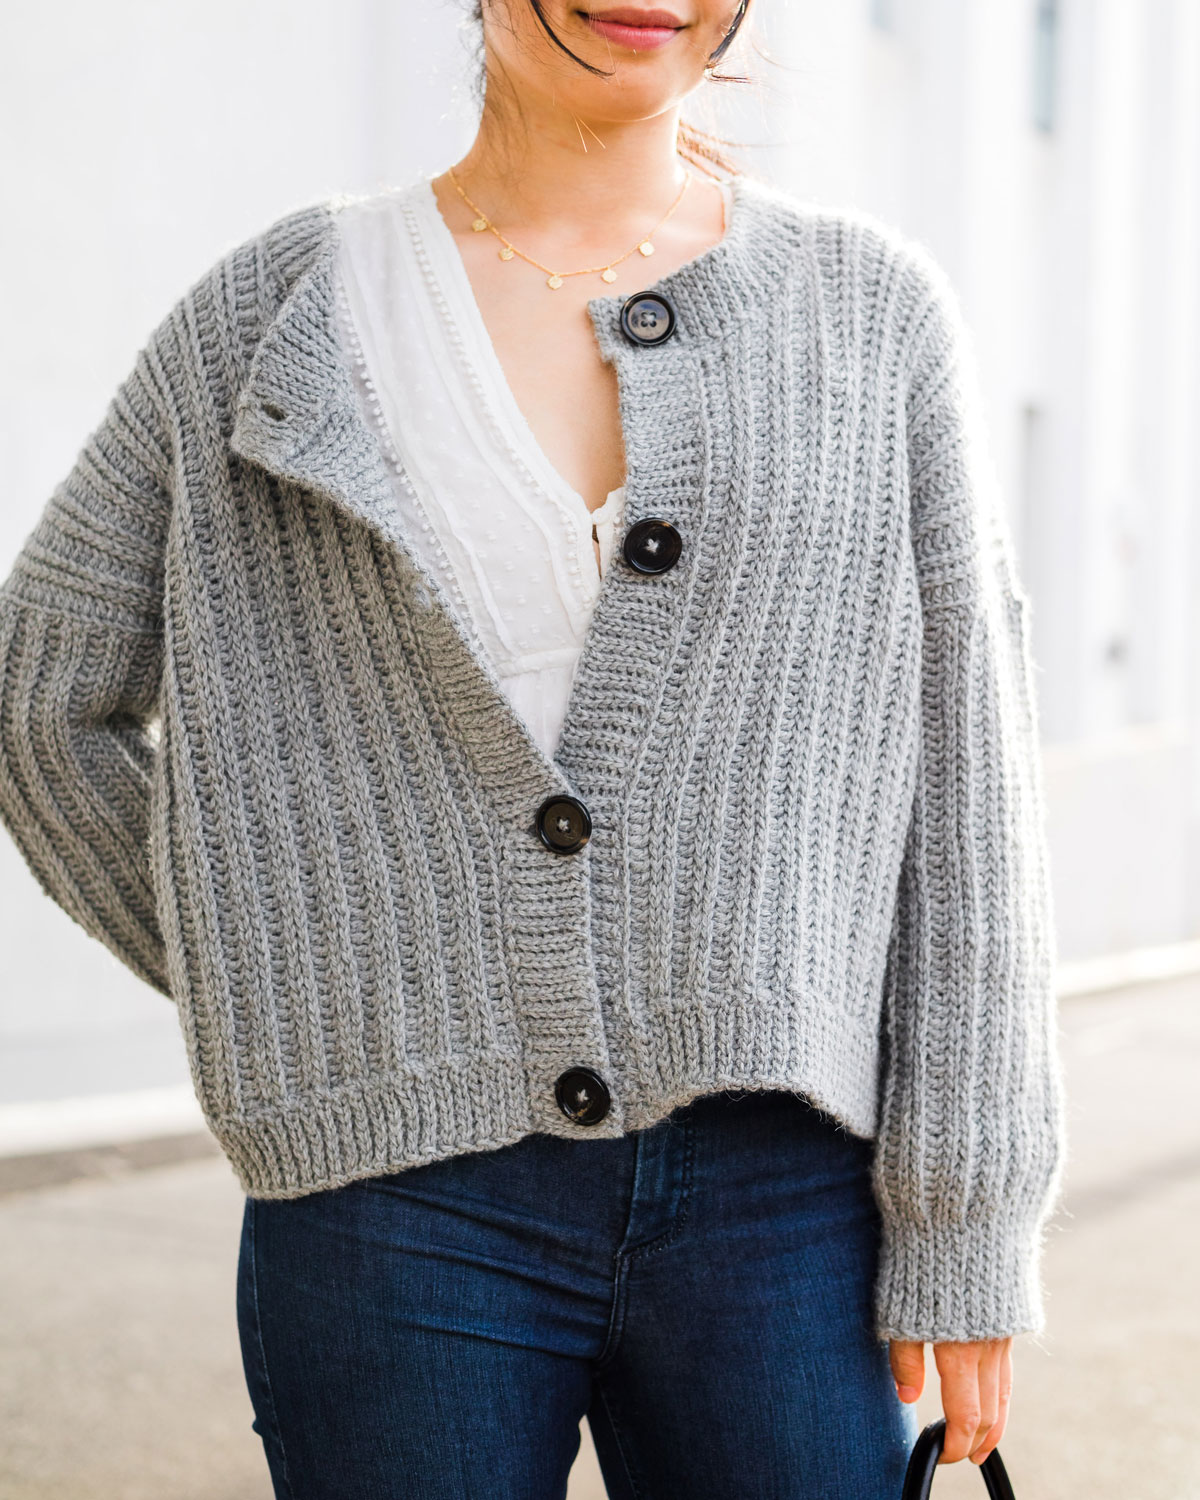 half unbuttoned grey alpaca yarn crochet cardigan with knit look ribbing and large black buttons